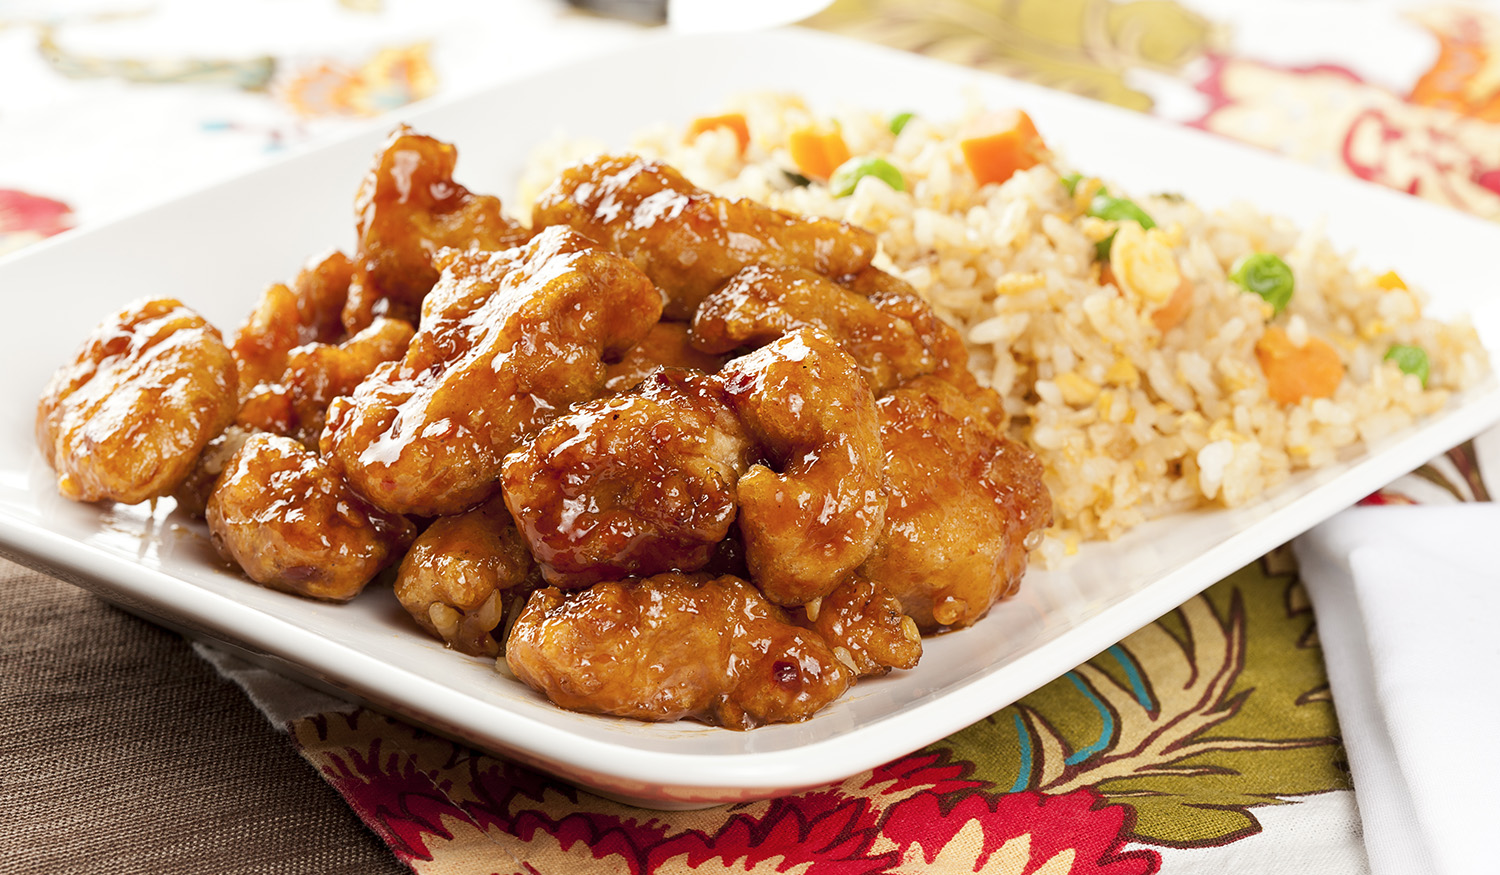 GENERAL JOE'S CHICKEN